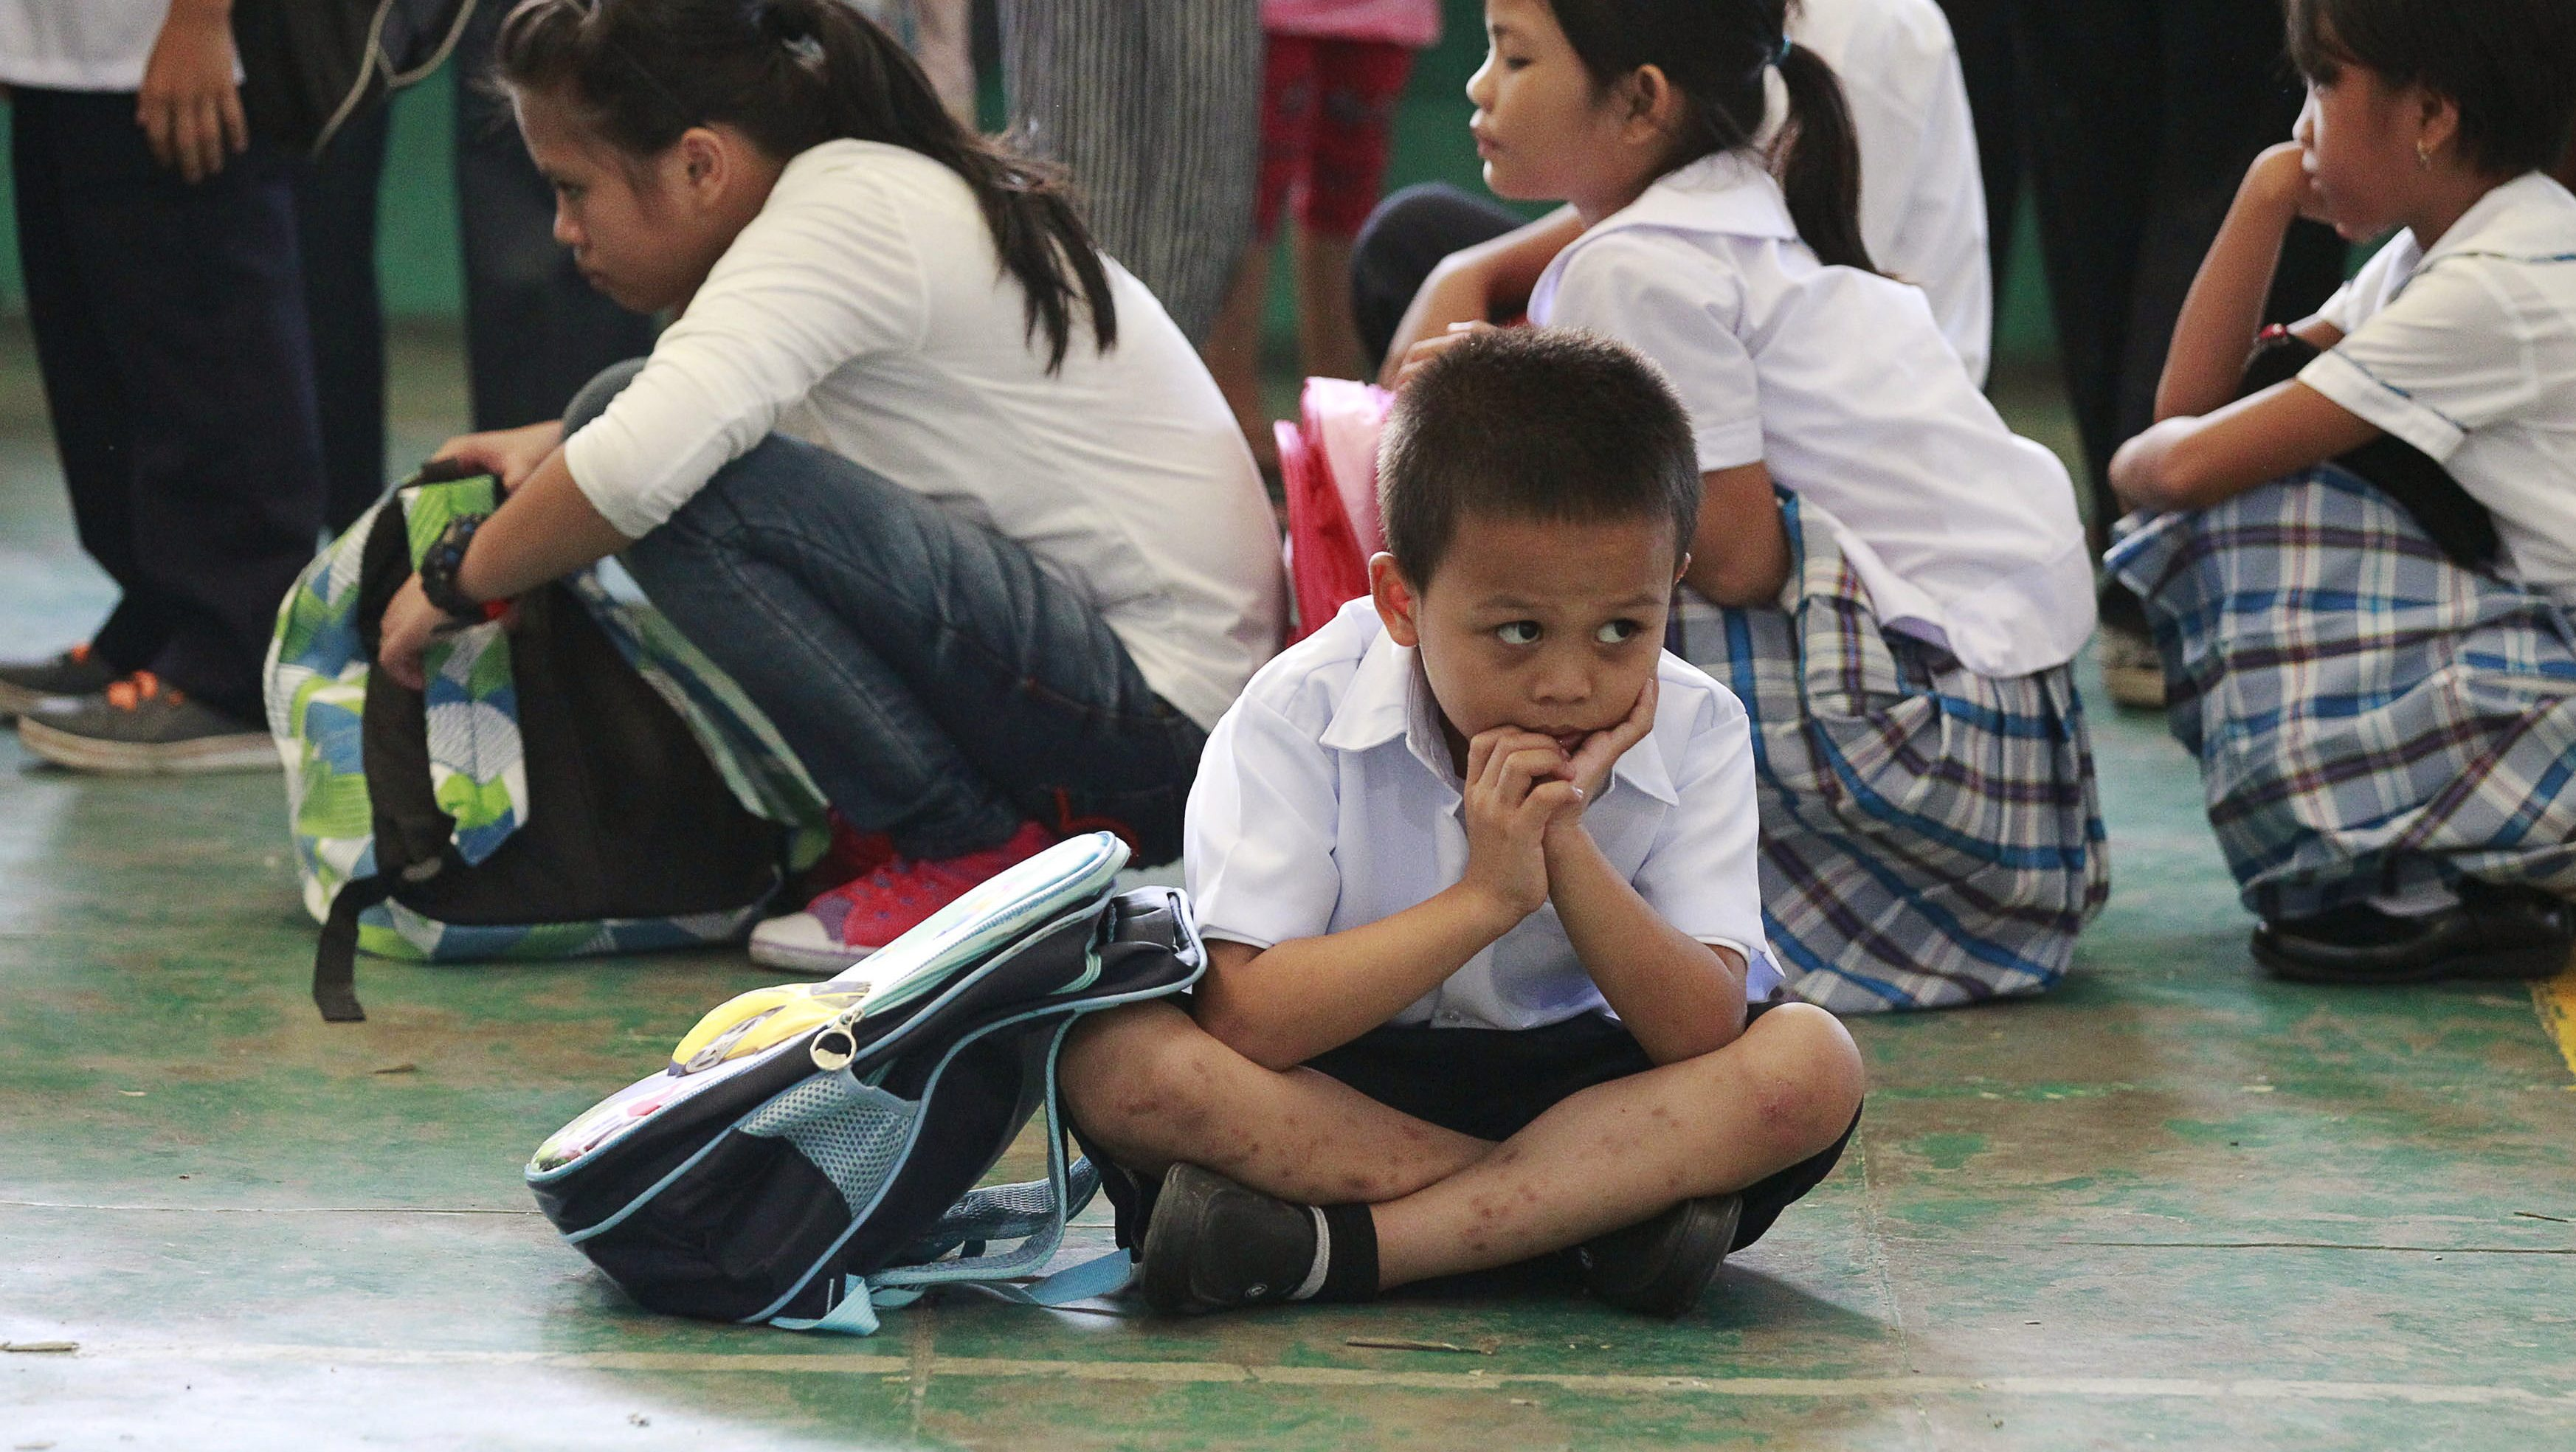 A boy sits on the floor as he waits with other students for the morning flag ceremony at Baclaran Elementary School in Paranaque City, metro Manila June 1, 2015. An estimated 24 million public school students in the primary and secondary levels attend the opening of classes nationwide, local media